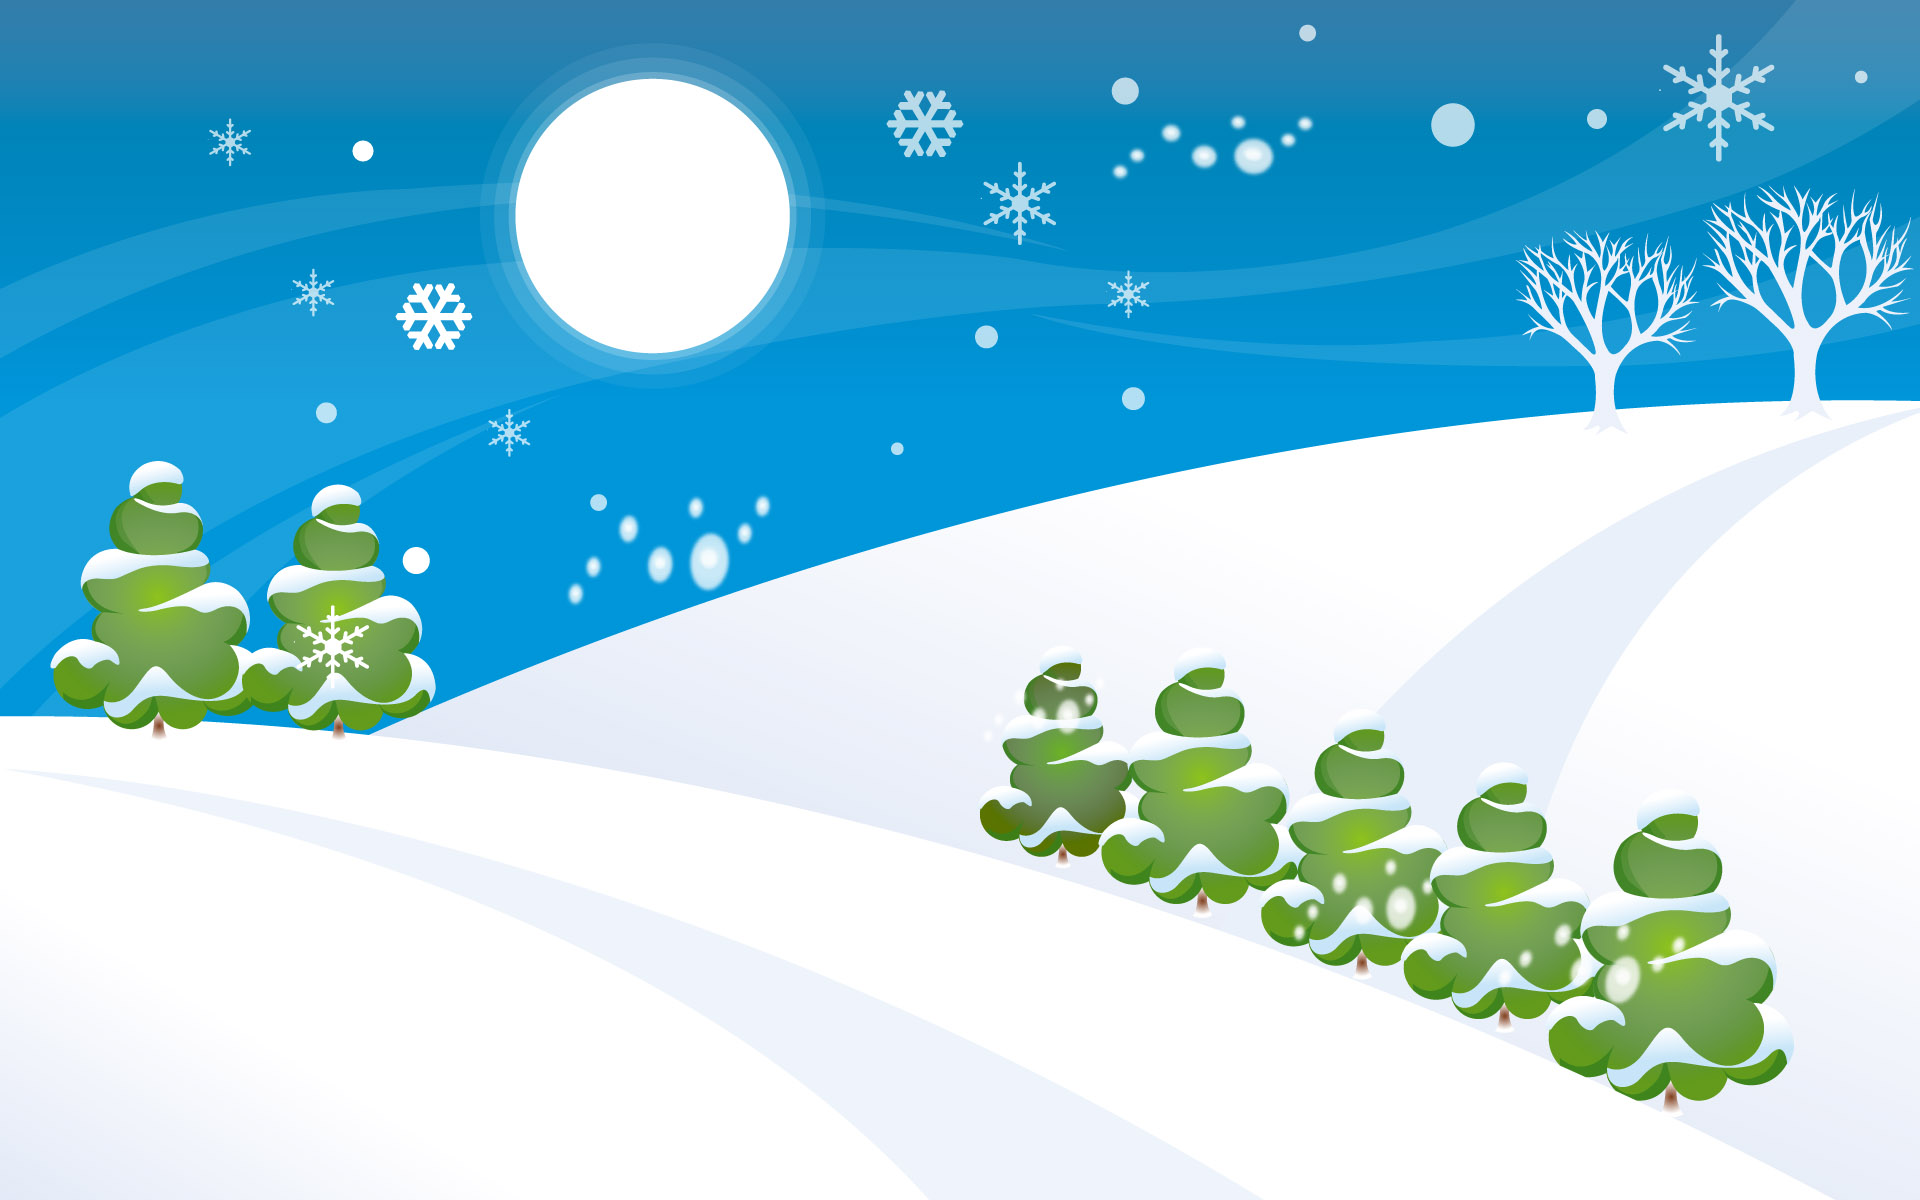 Simple Christmas Snow World Wallpaper